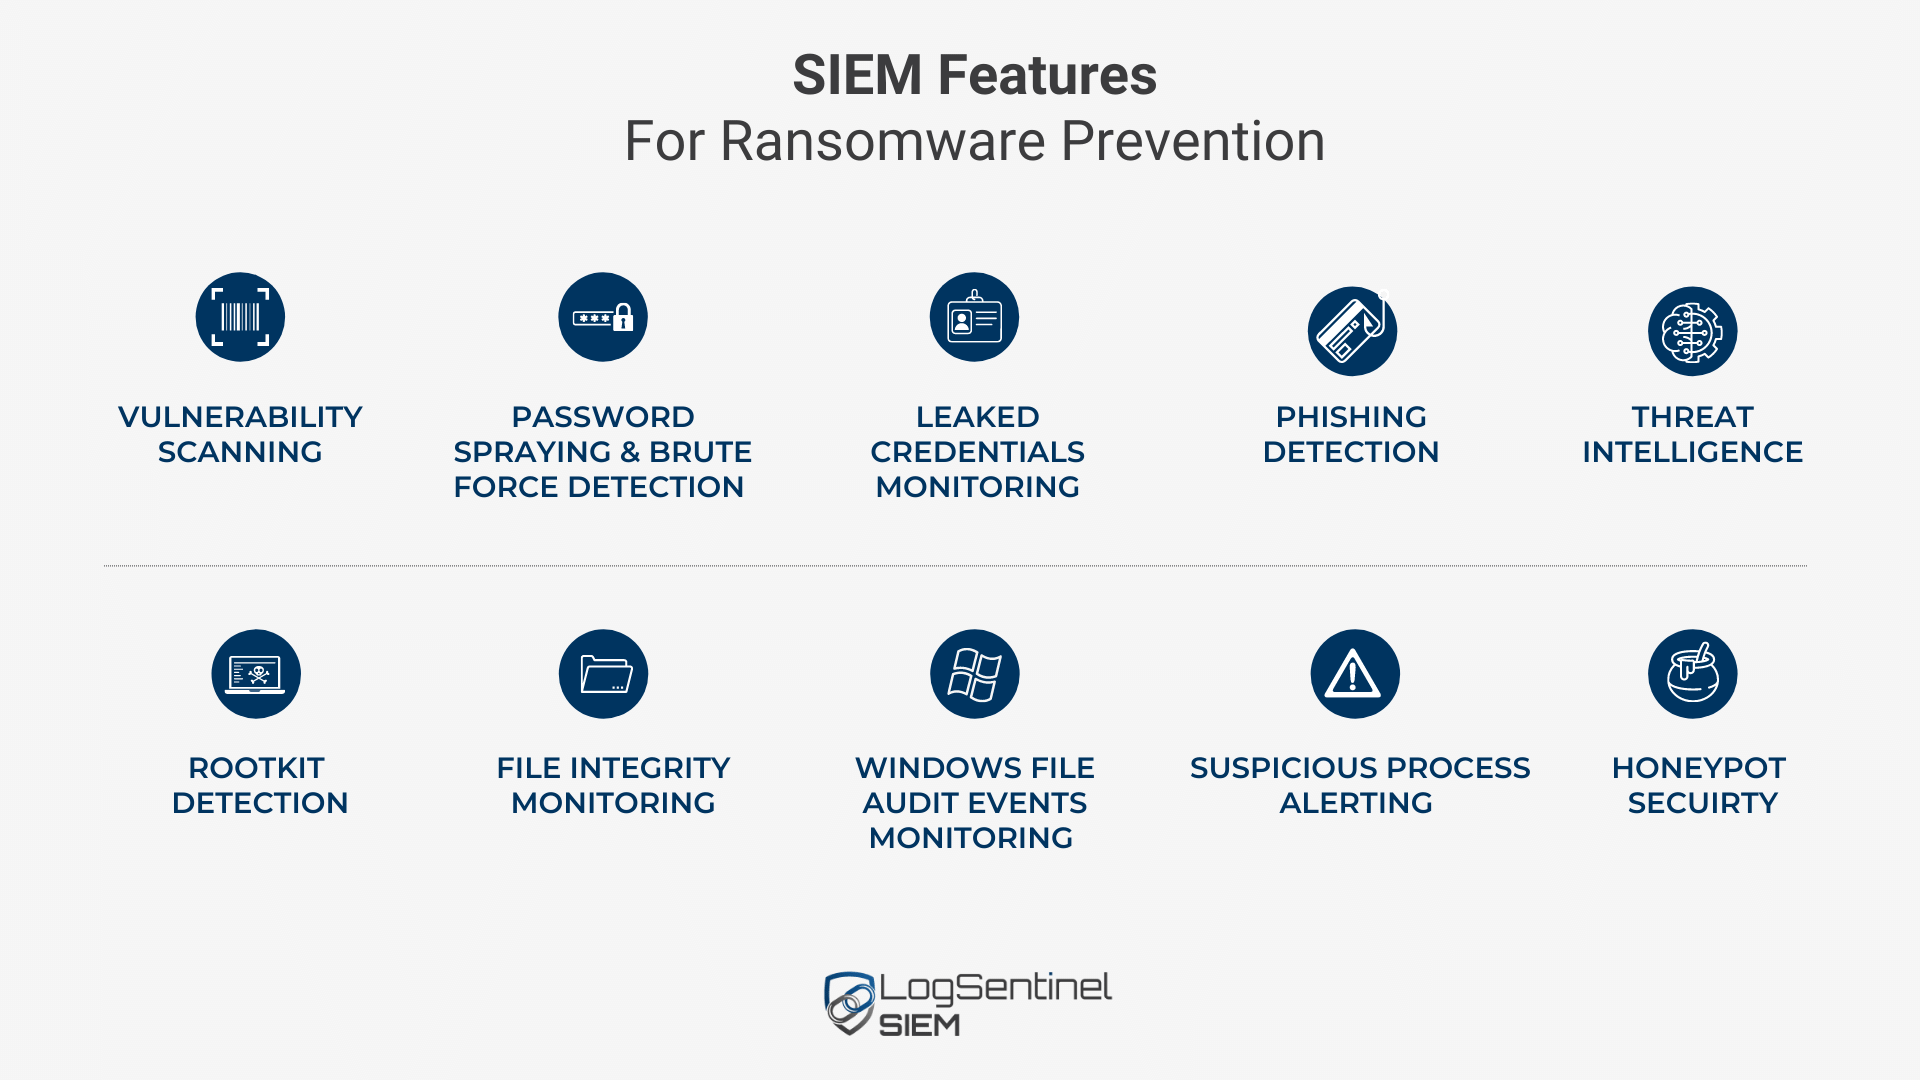 SIEM Features for Ransomware Protection